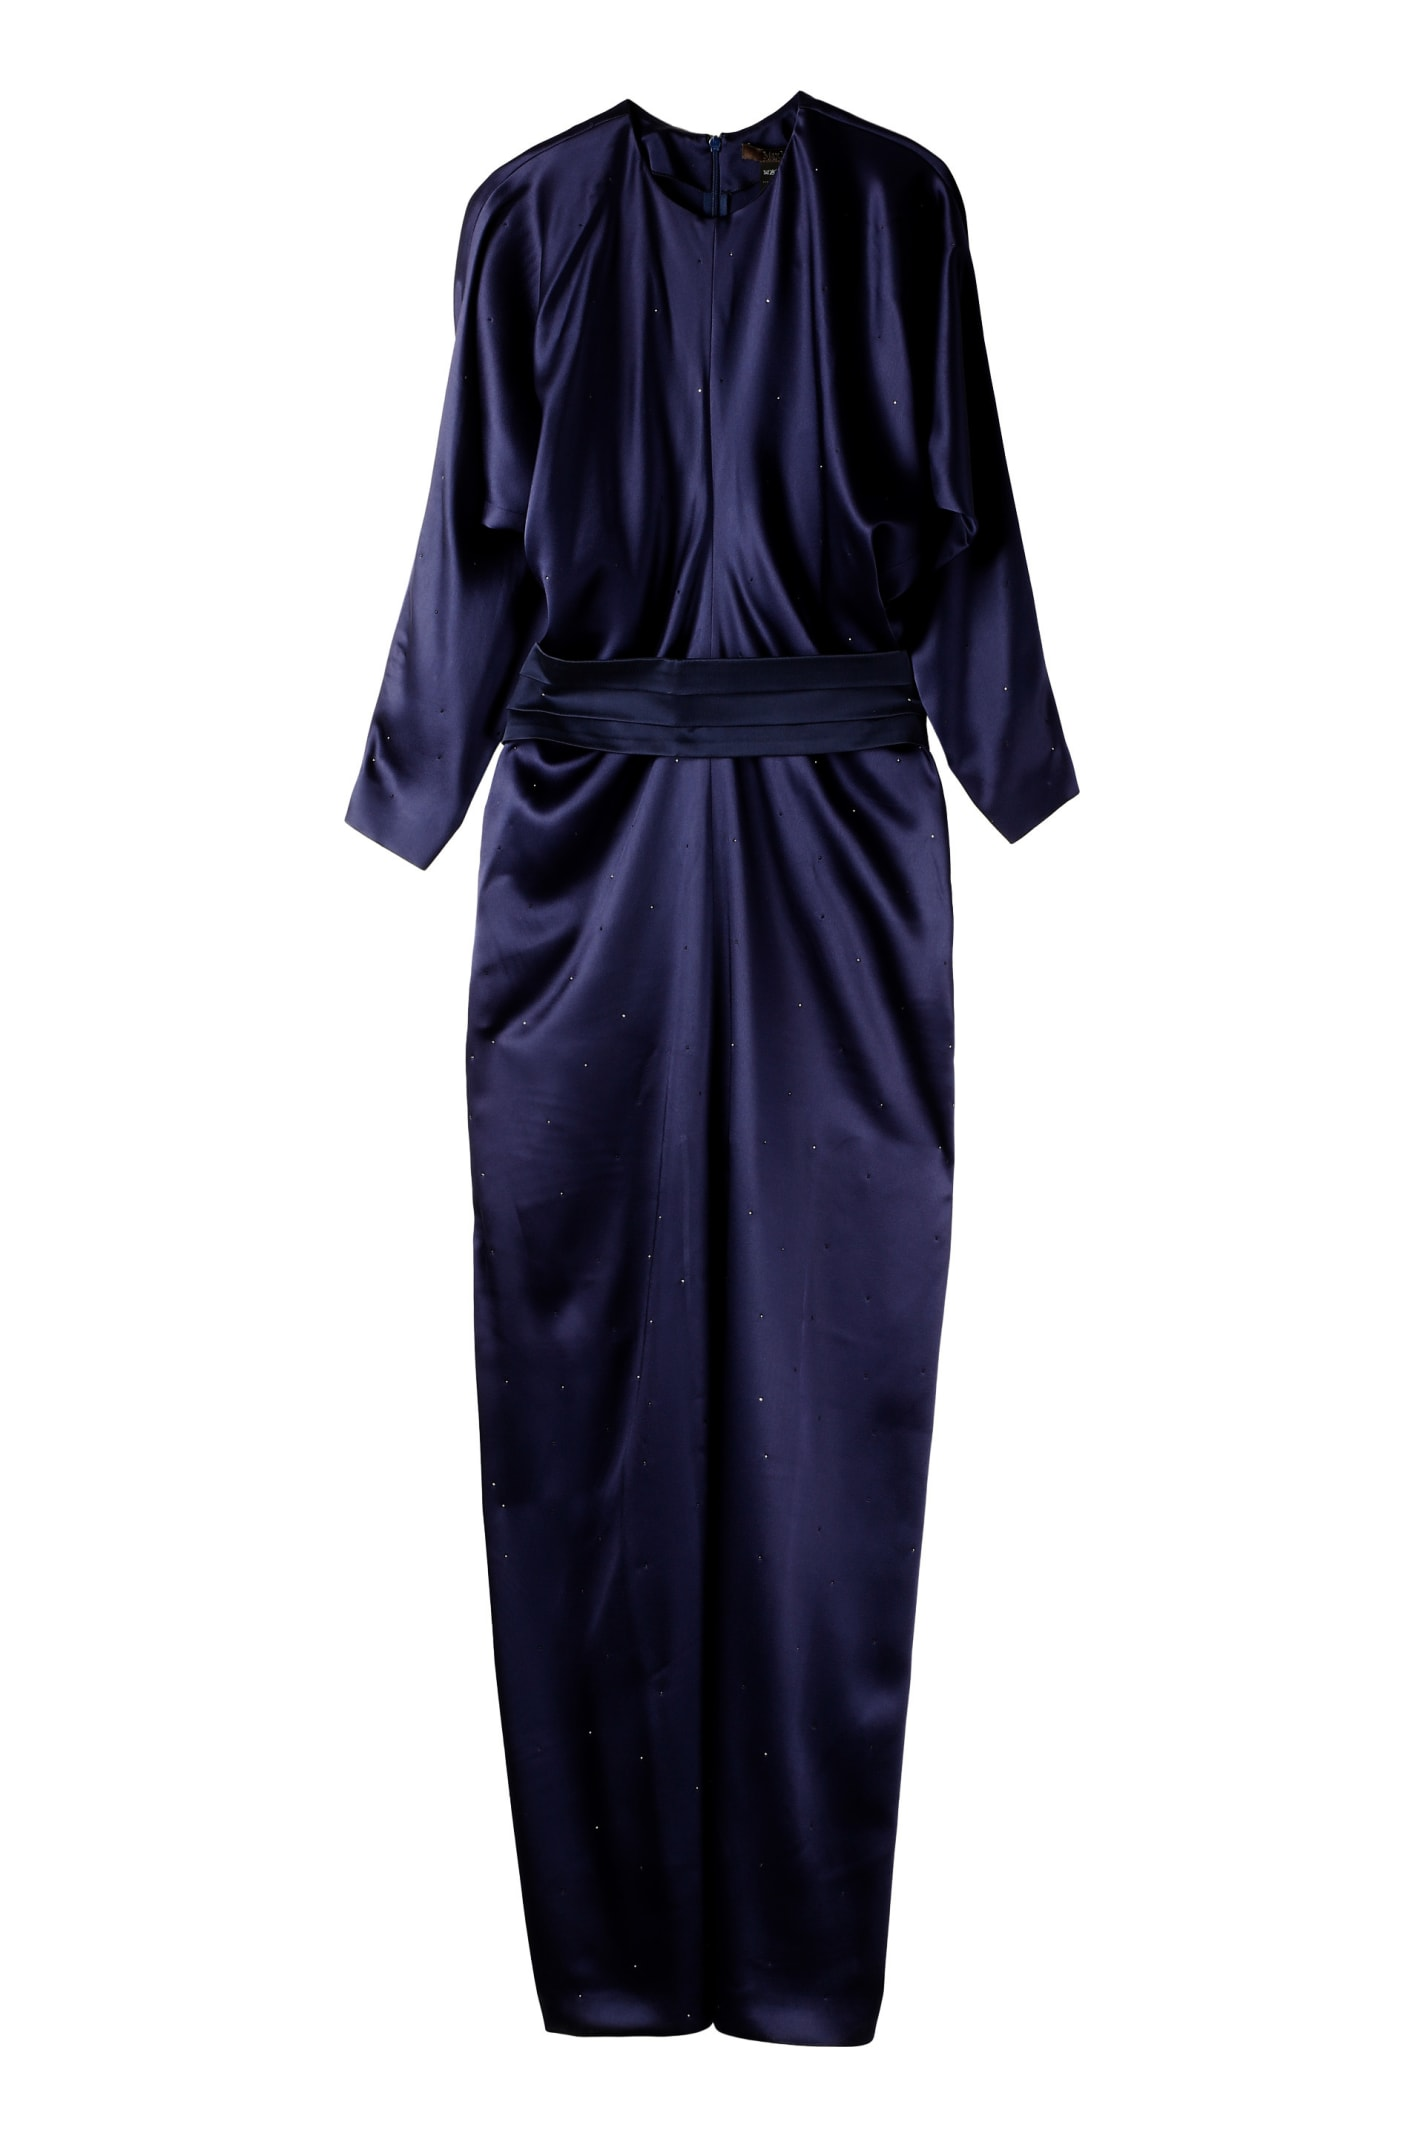 Max Mara Pagode Belted Matte Satin Dress